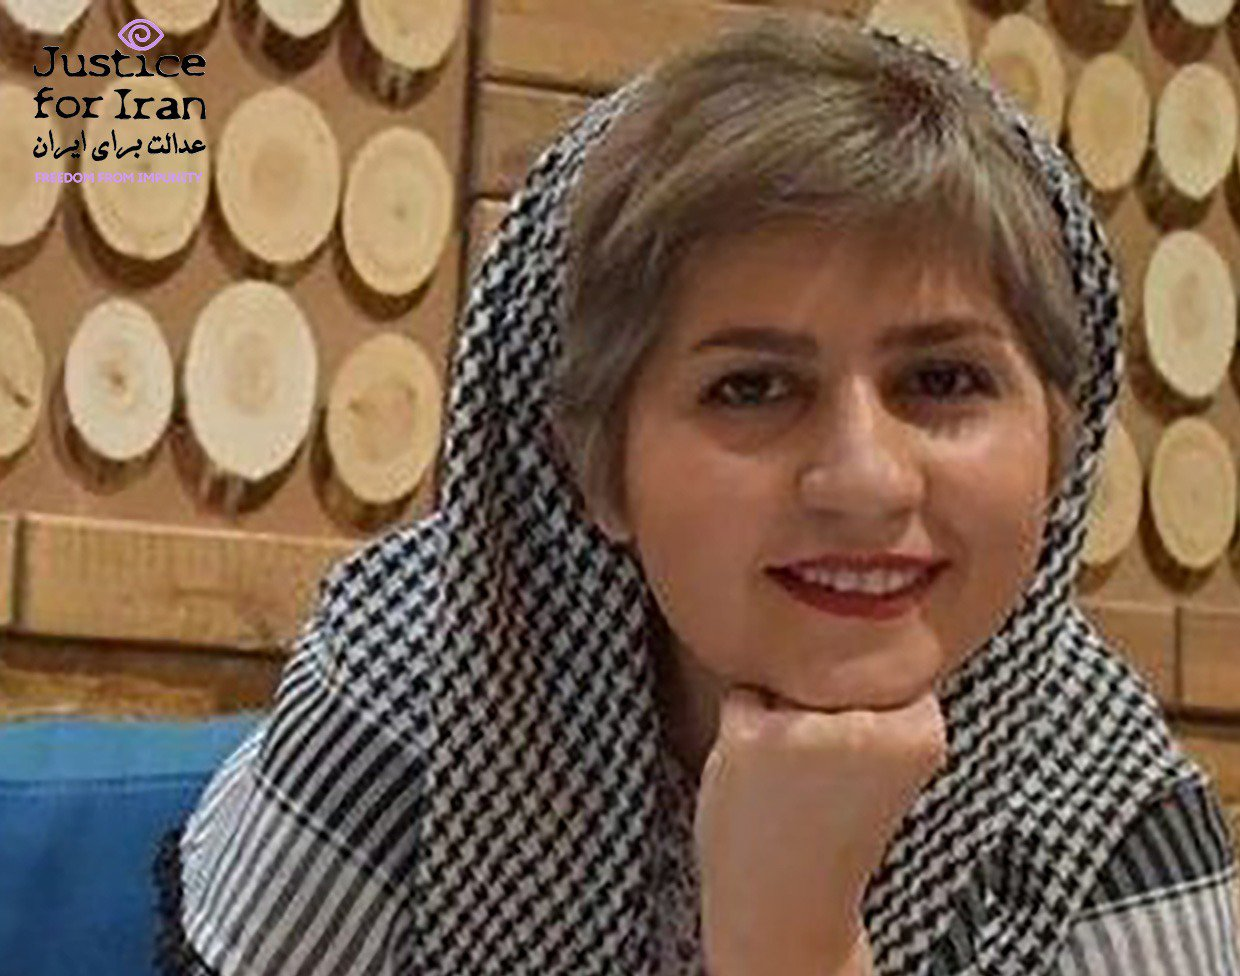 Labour activist Sepideh Gholian files lawsuit against the IRIB